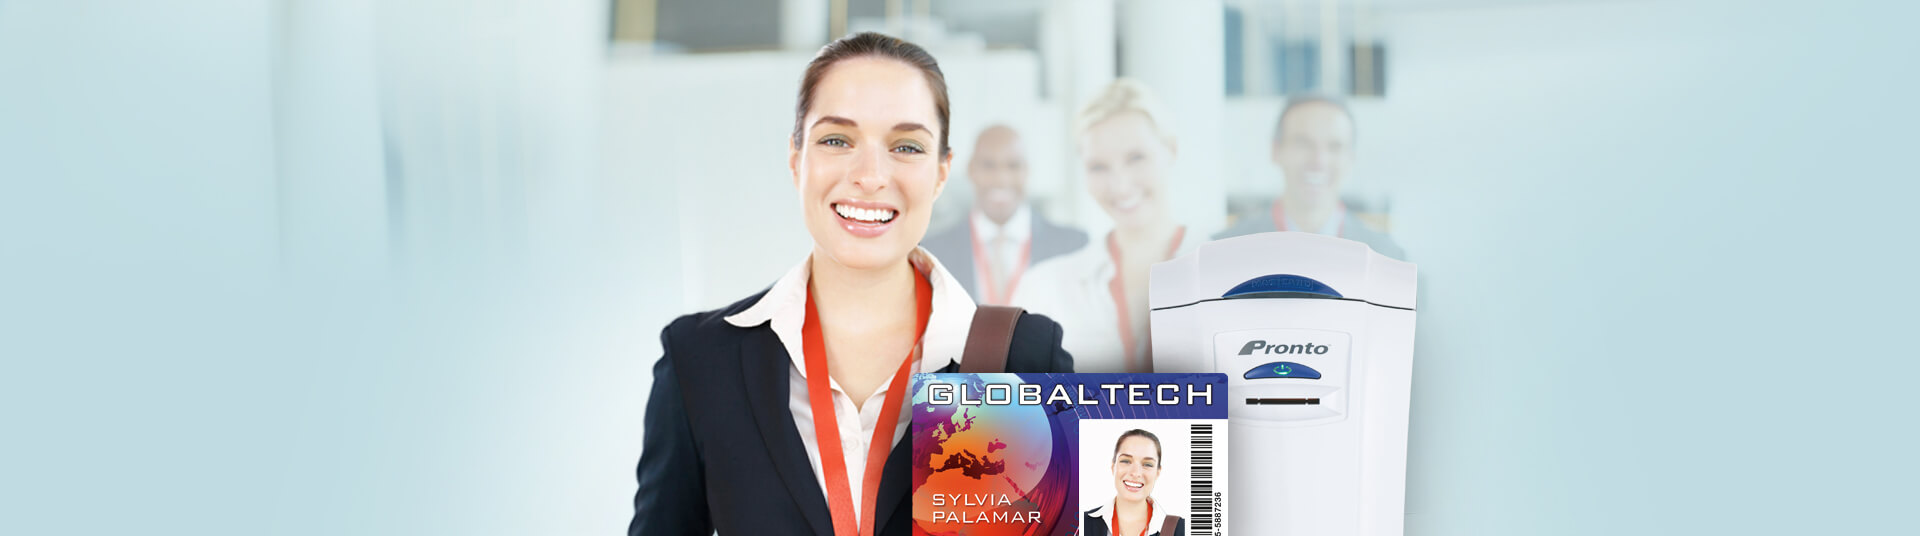 Employee ID Card Resources